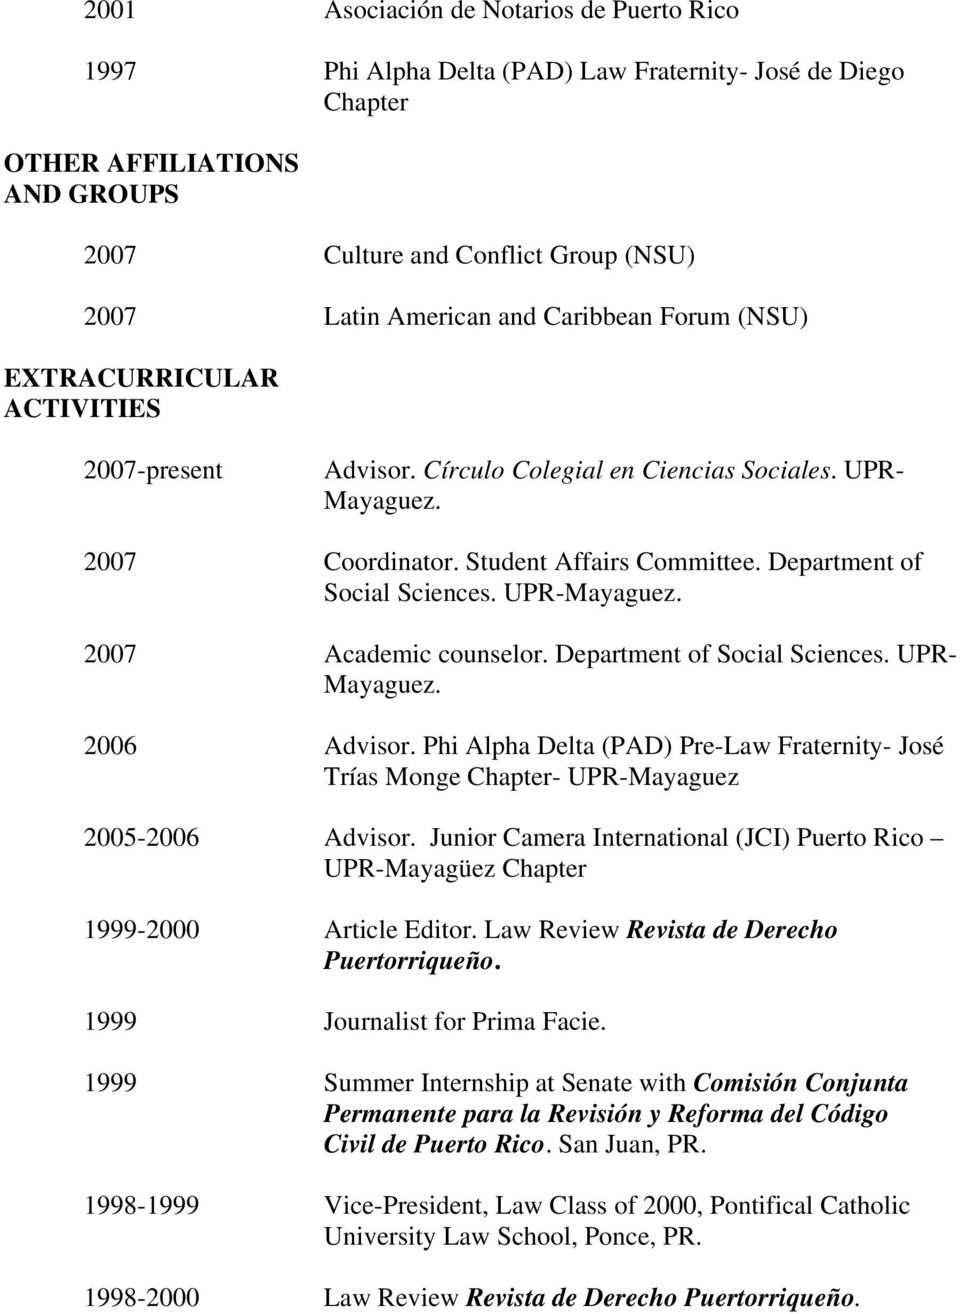 UPR-Mayaguez. 2007 Academic counselor. Department of Social Sciences. UPR- Mayaguez. 2006 Advisor. Phi Alpha Delta (PAD) Pre-Law Fraternity- José Trías Monge Chapter- UPR-Mayaguez 2005-2006 Advisor.